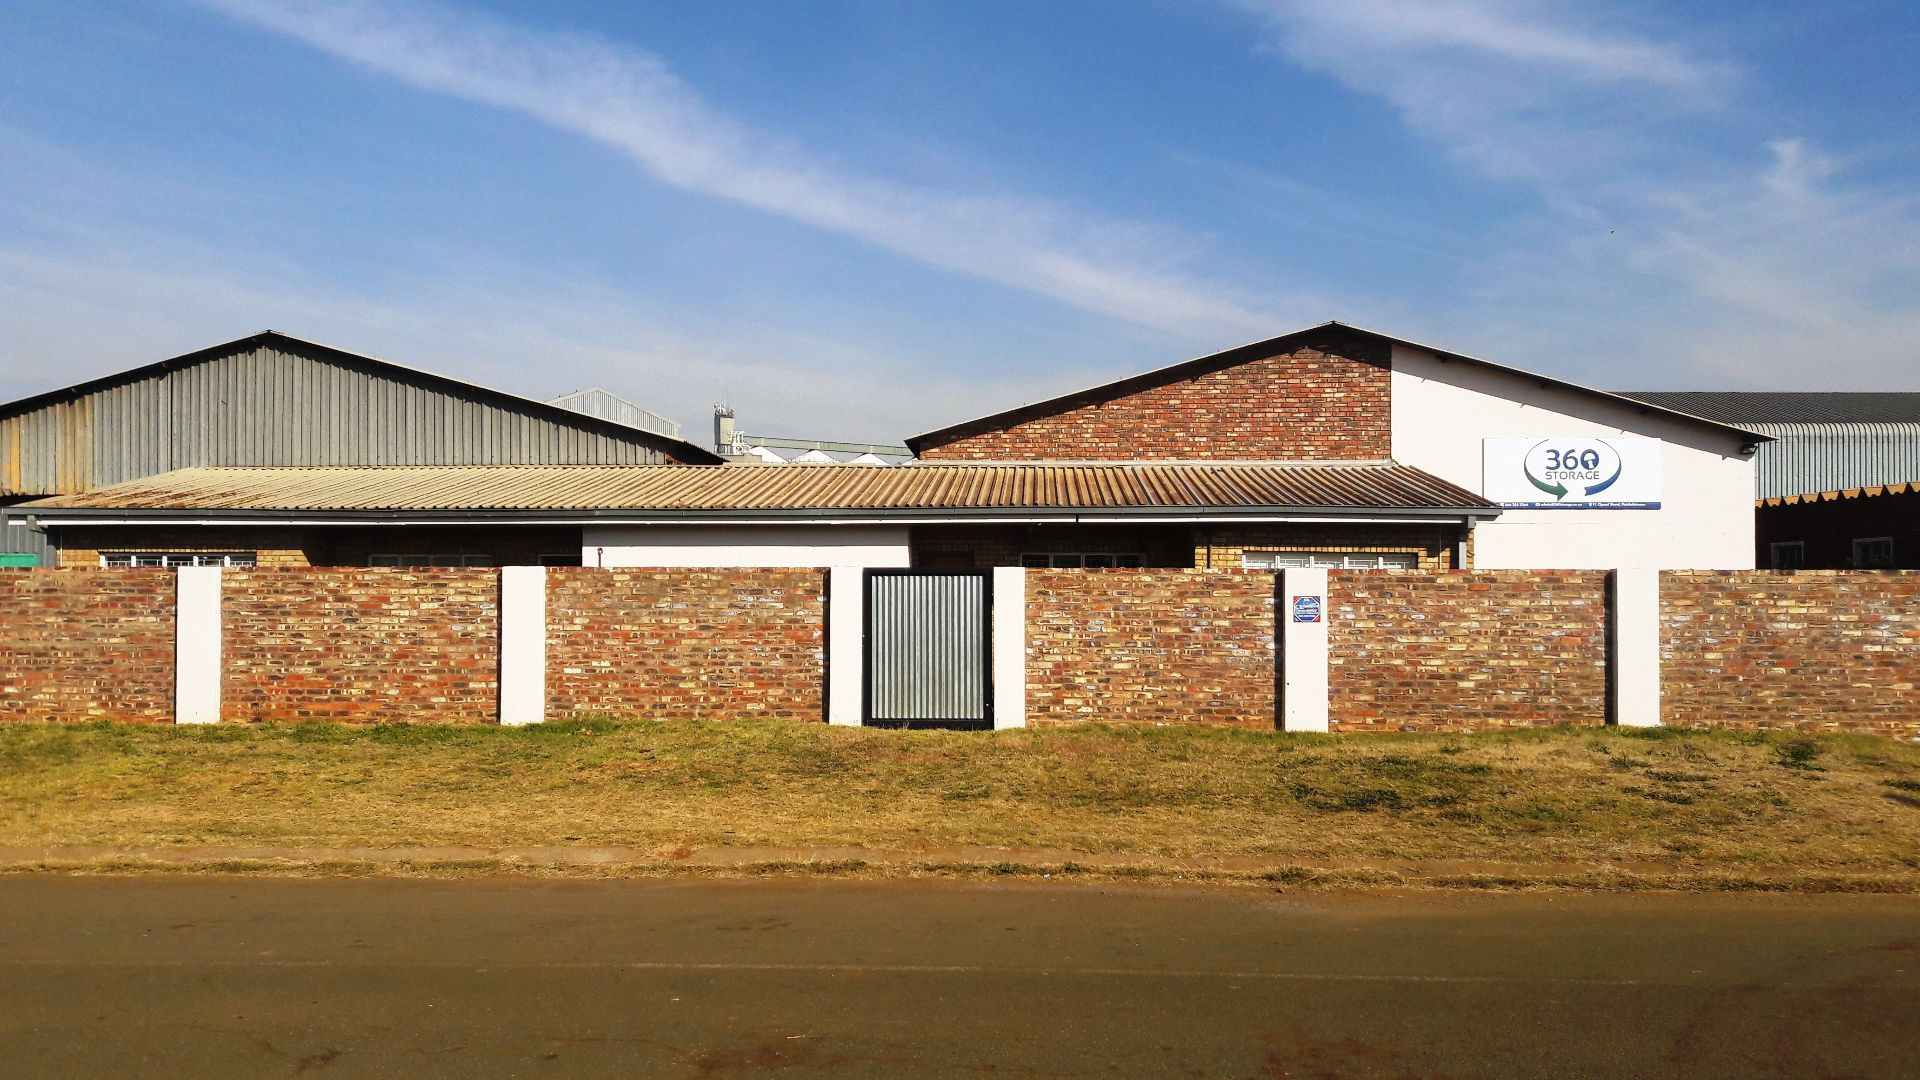 Investment / Residential investment in Potch Industria - 20190619_142053.jpg